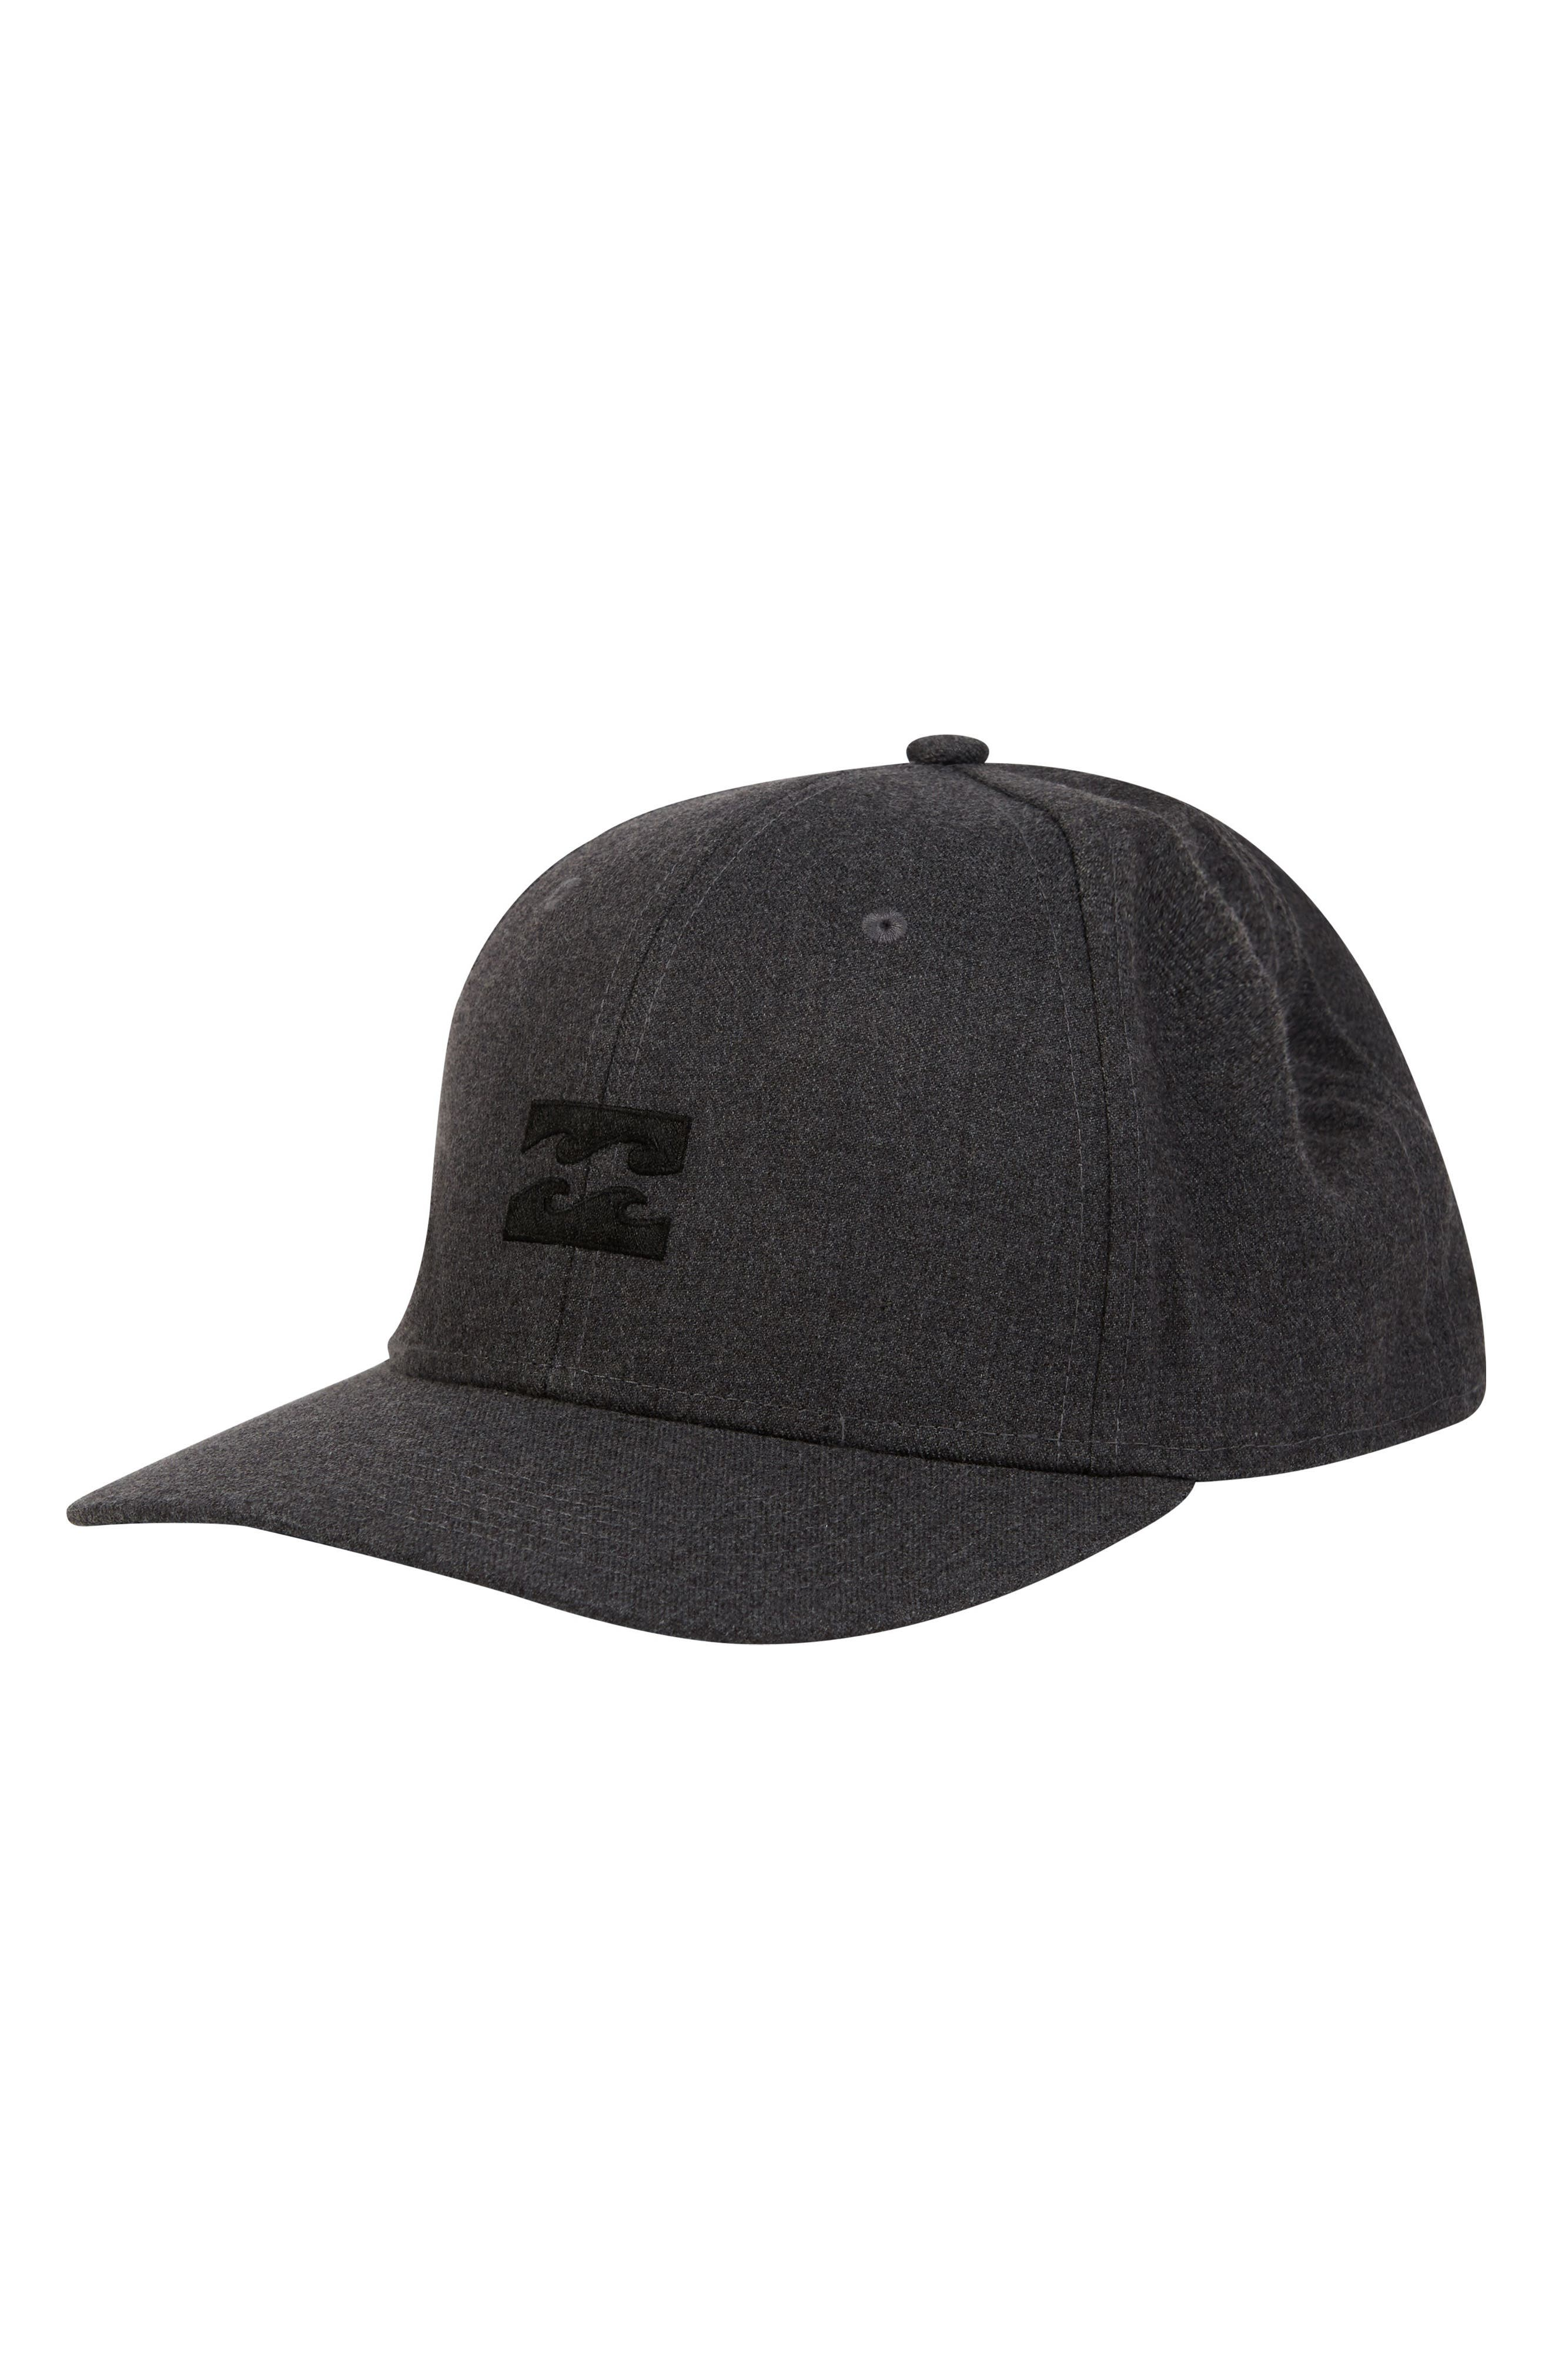 All Day Stretch Ball Cap,                             Main thumbnail 1, color,                             DARK GREY HEATHER